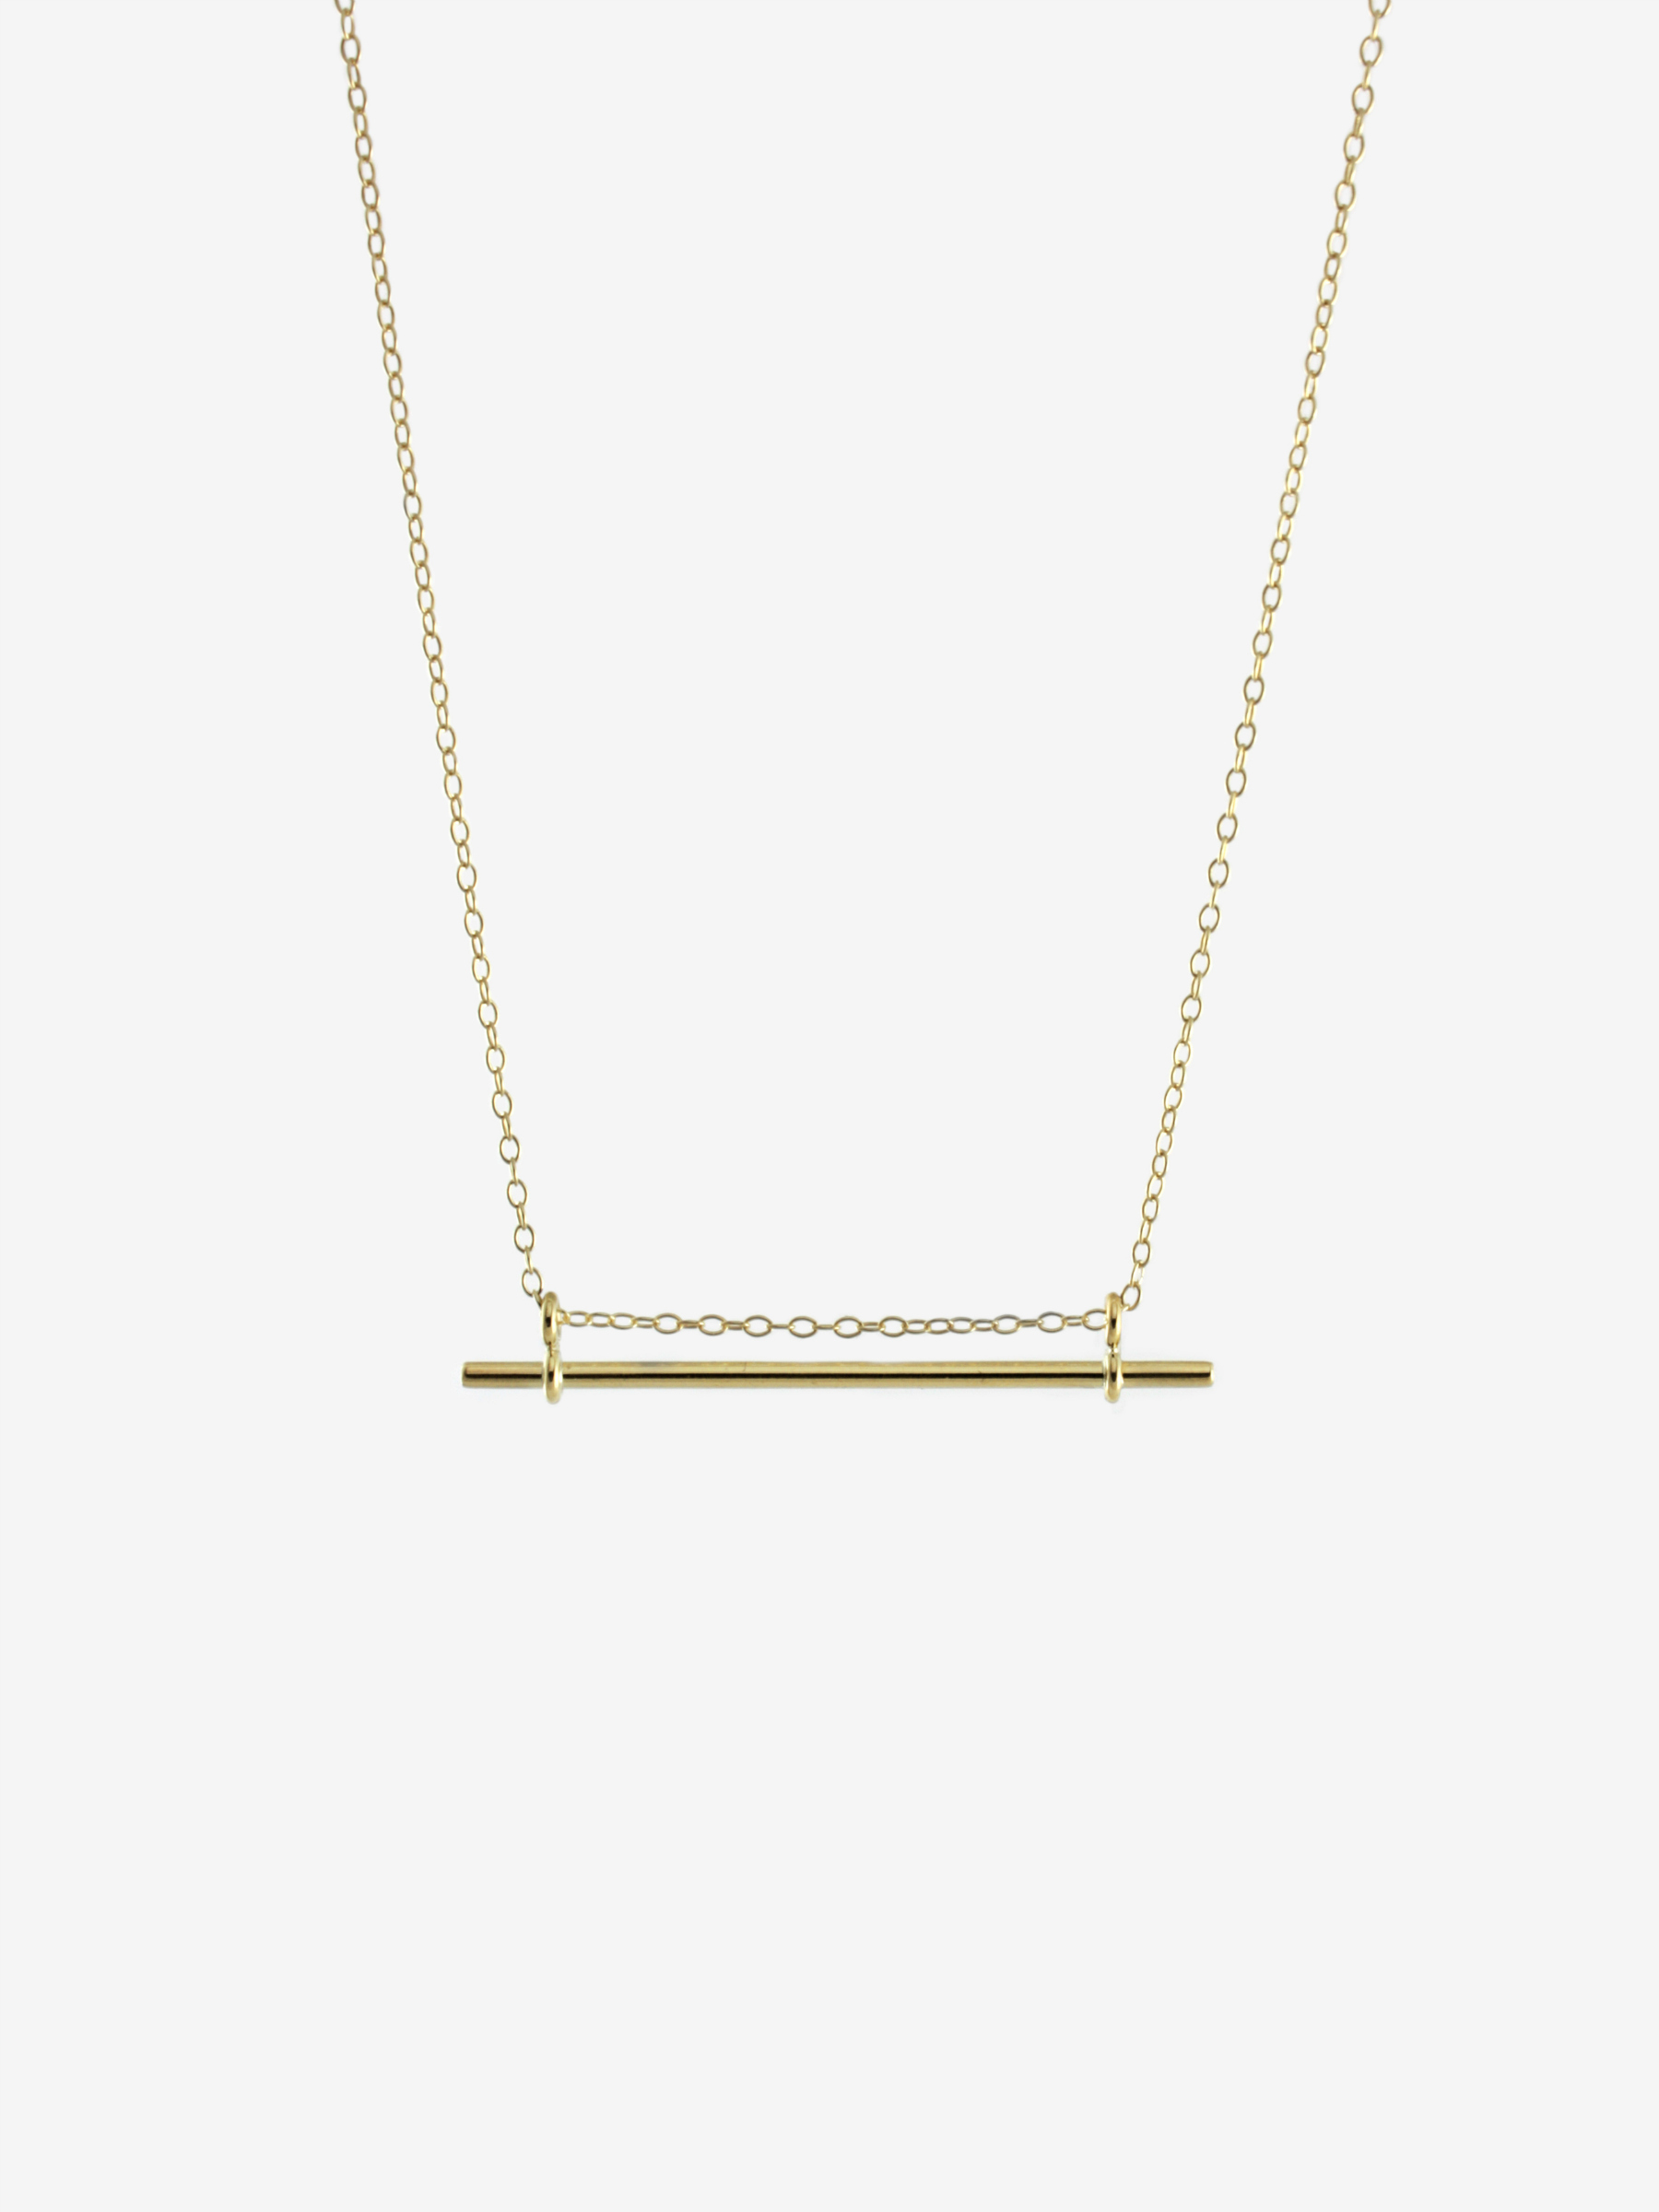 Minimal B necklace by Bepart - available at utopiast.com